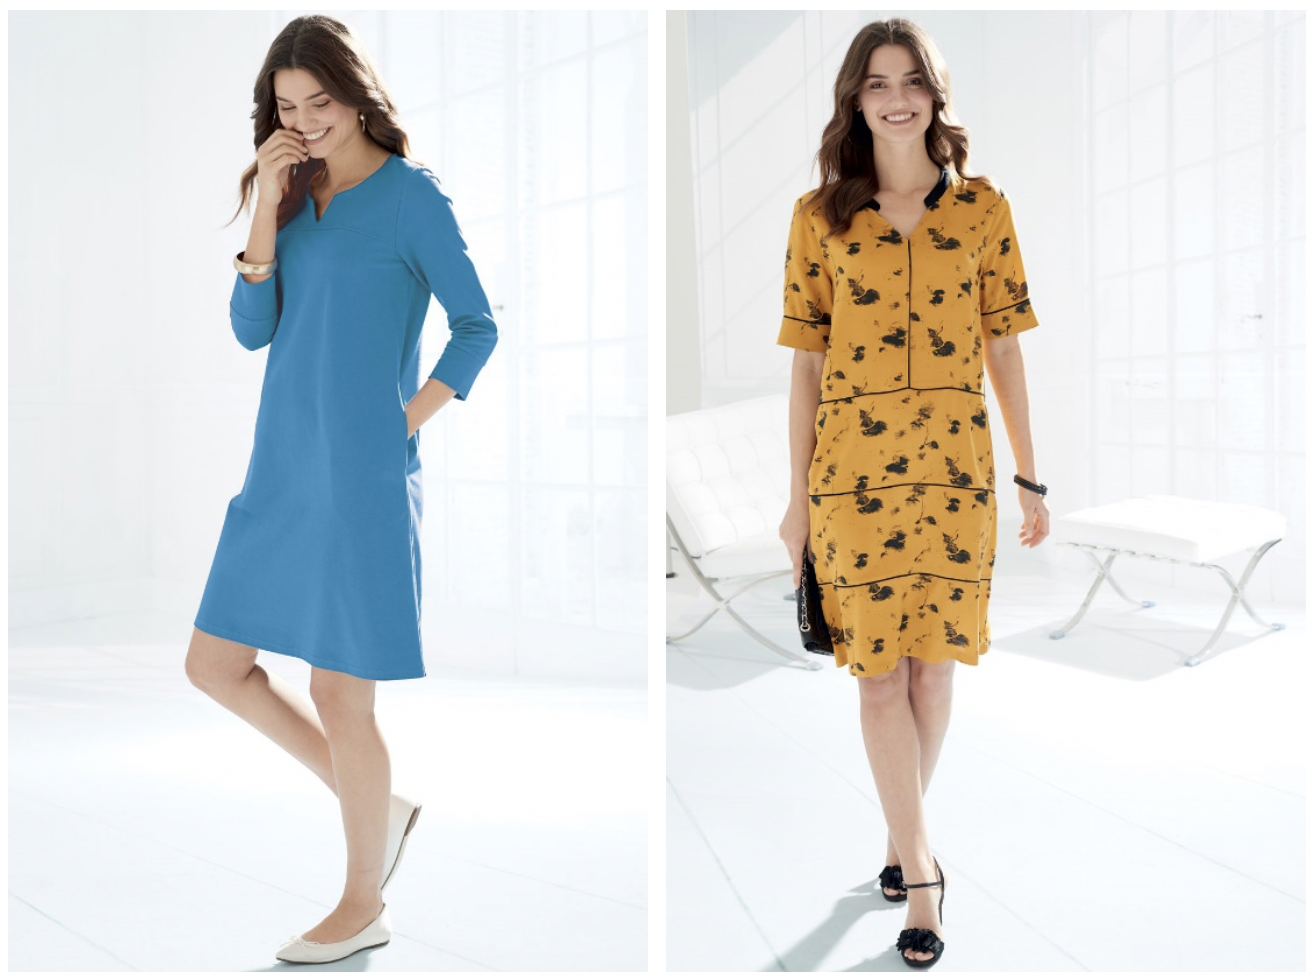 dresses for petites